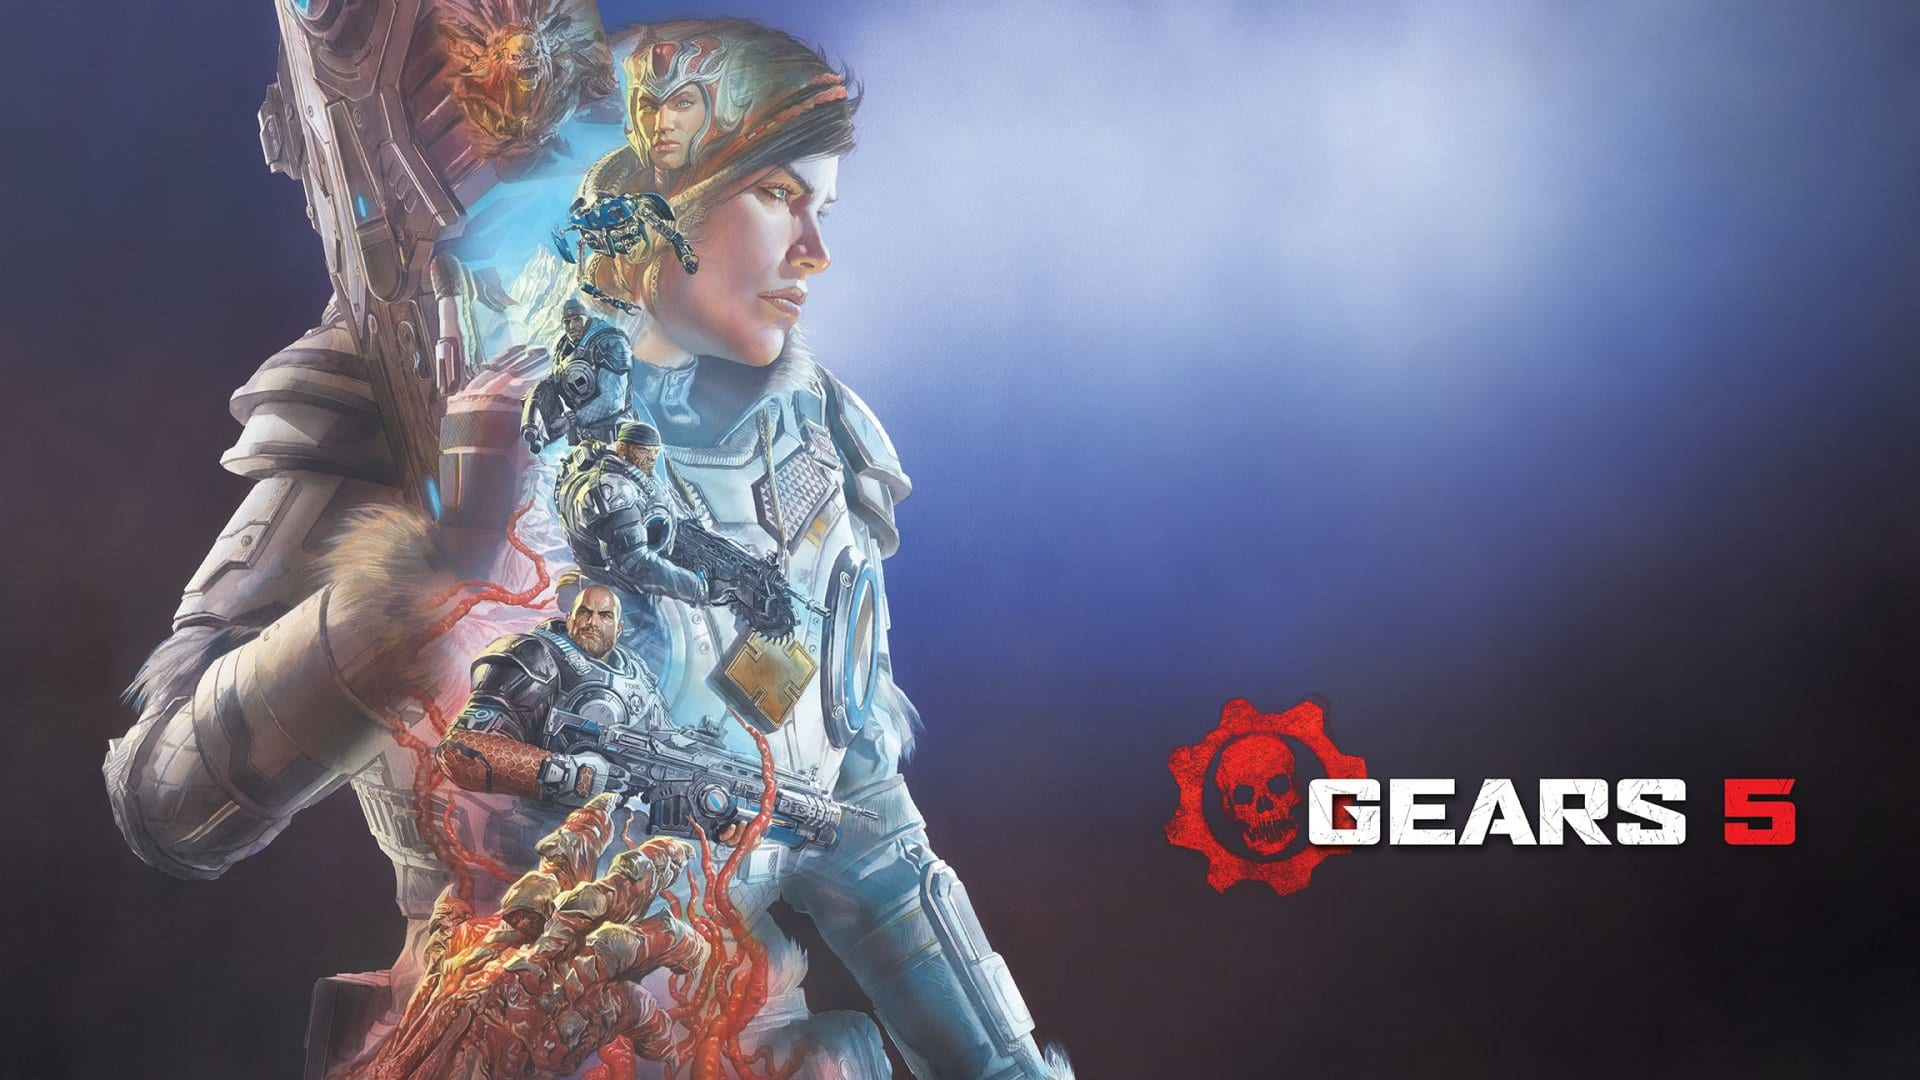 10 4k Hd Gears 5 Wallpapers You Need To Make Your Next Desktop